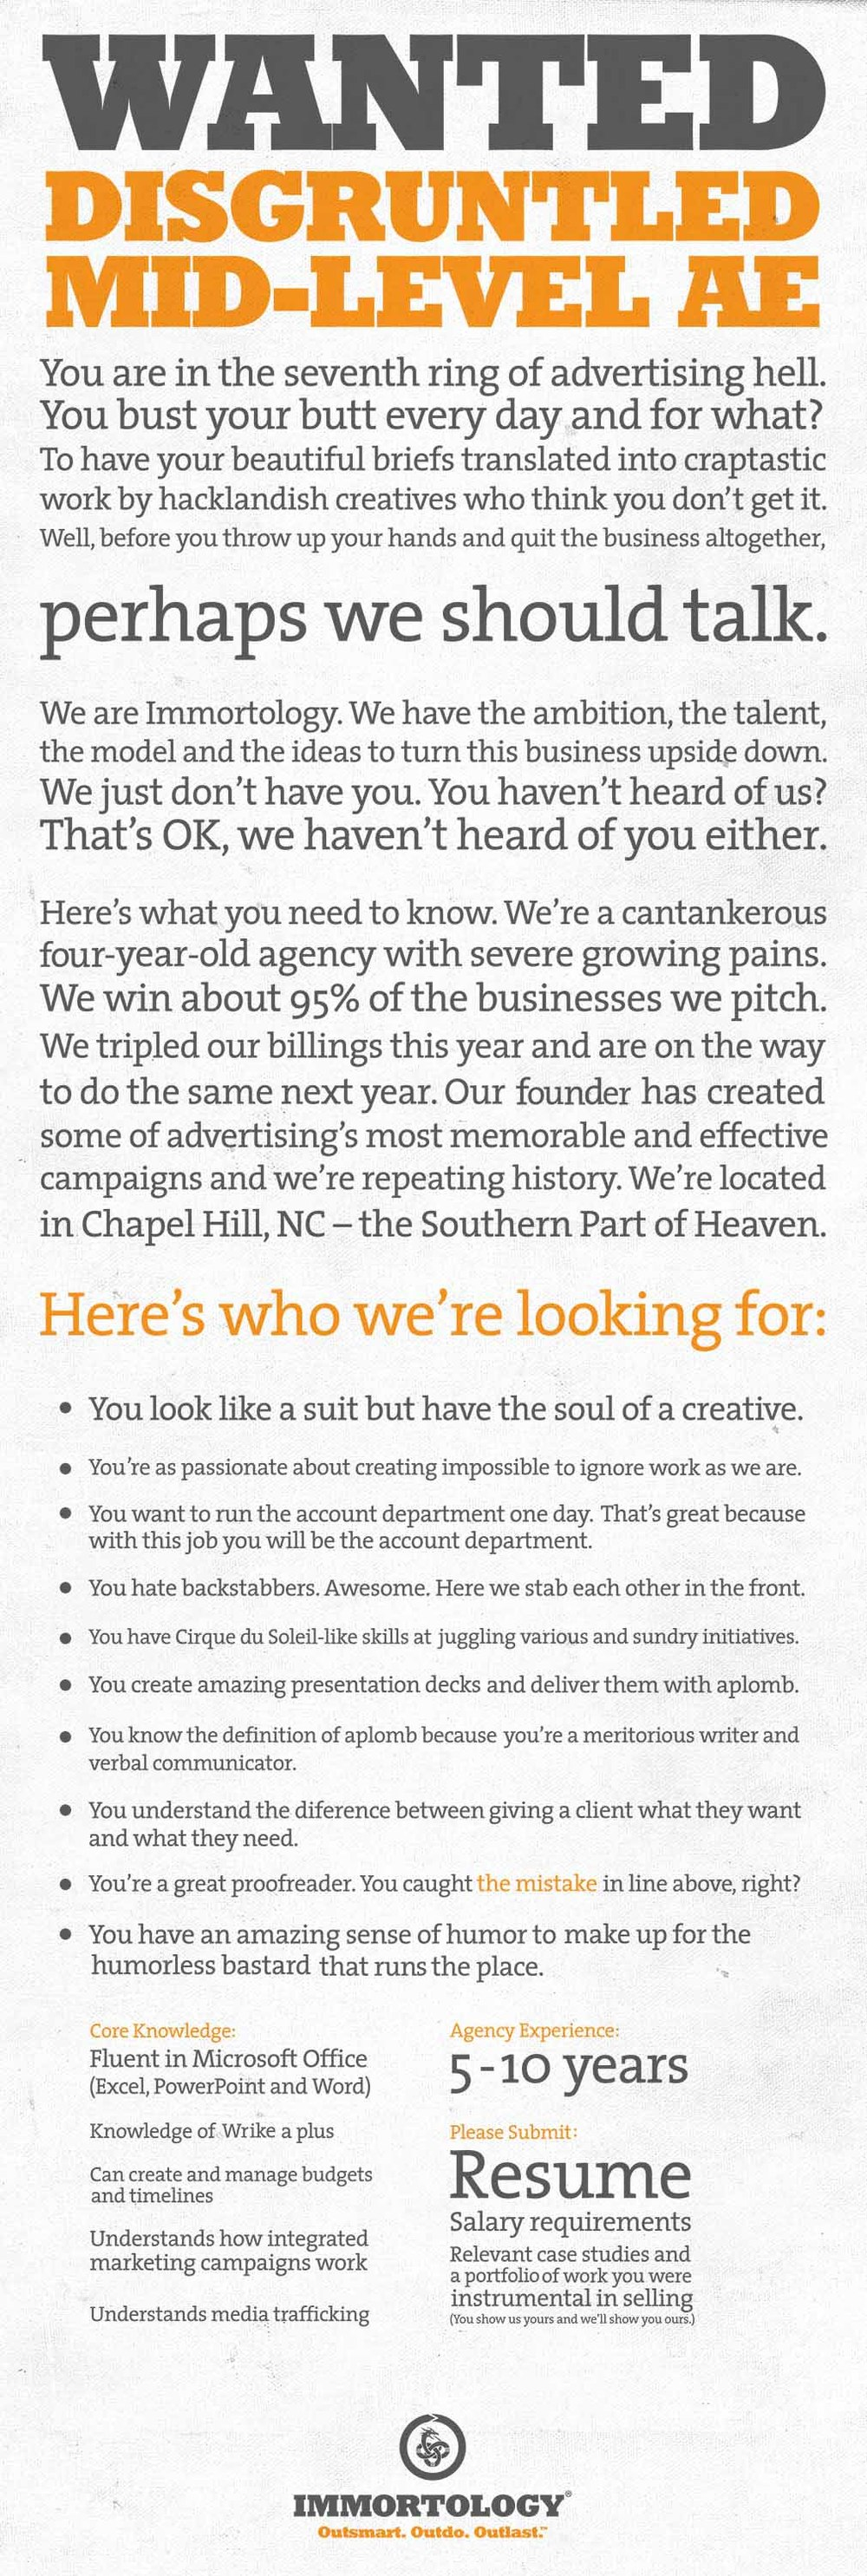 Immortology recruitment ad. Click to enlarge.